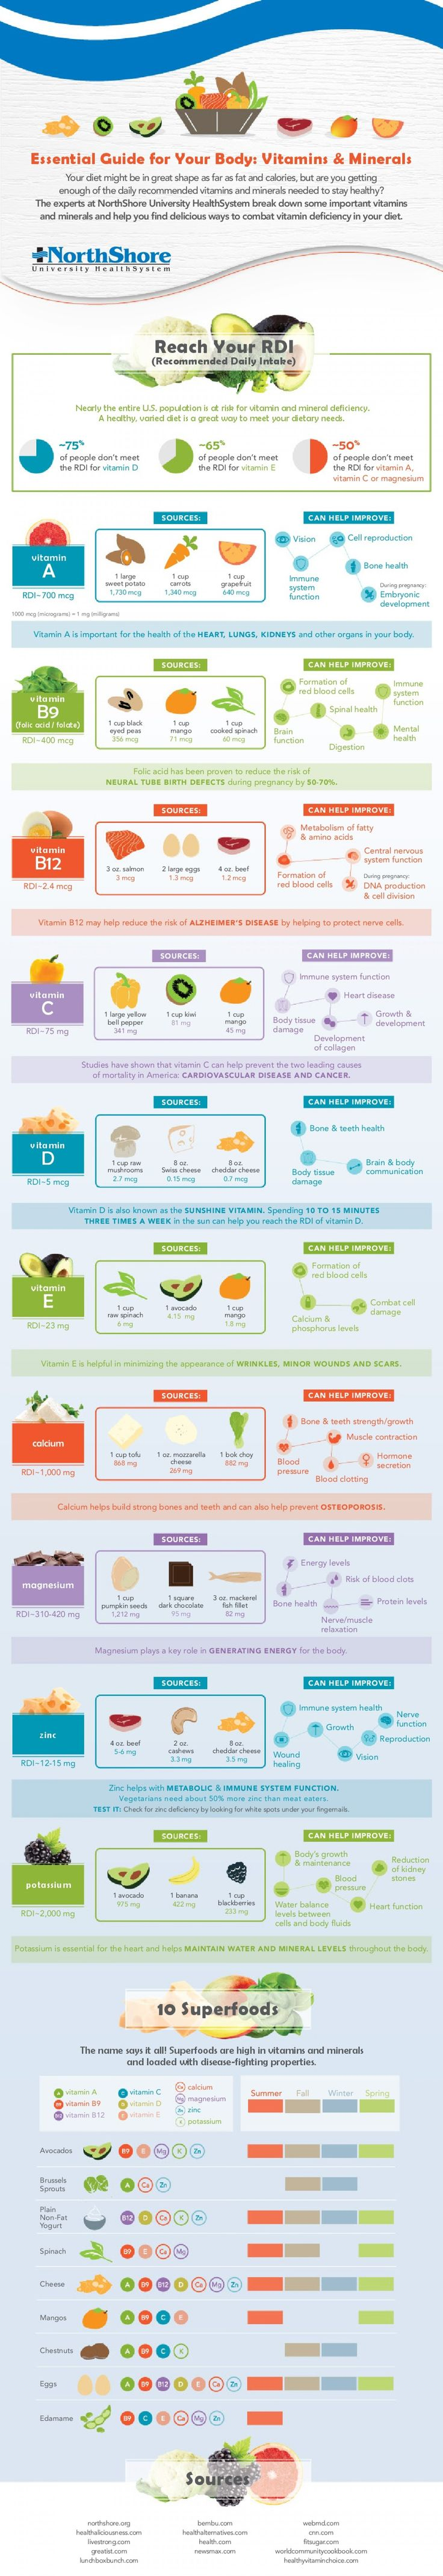 Foods High in Essential Vitamins and Minerals --shared by NorthShoreWeb on Aug 07, 2014 - See more at: http://visual.ly/foods-high-essential-vitamins-and-minerals#sthash.rMkBfBfR.dpuf